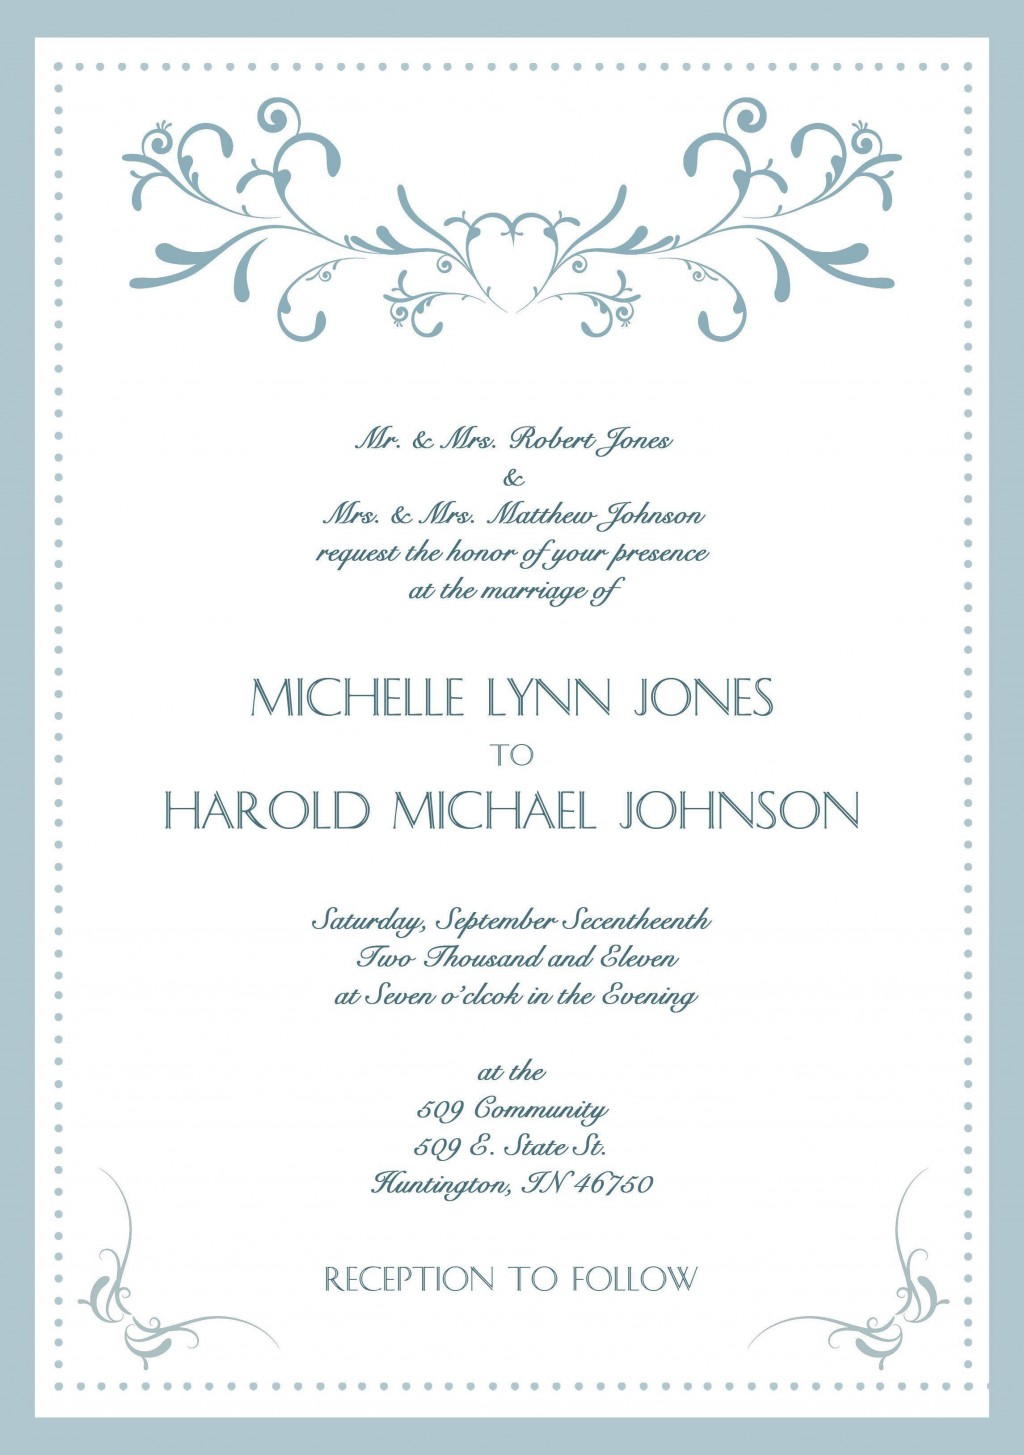 004 Exceptional Formal Wedding Invitation Wording Template High Definition  TemplatesLarge